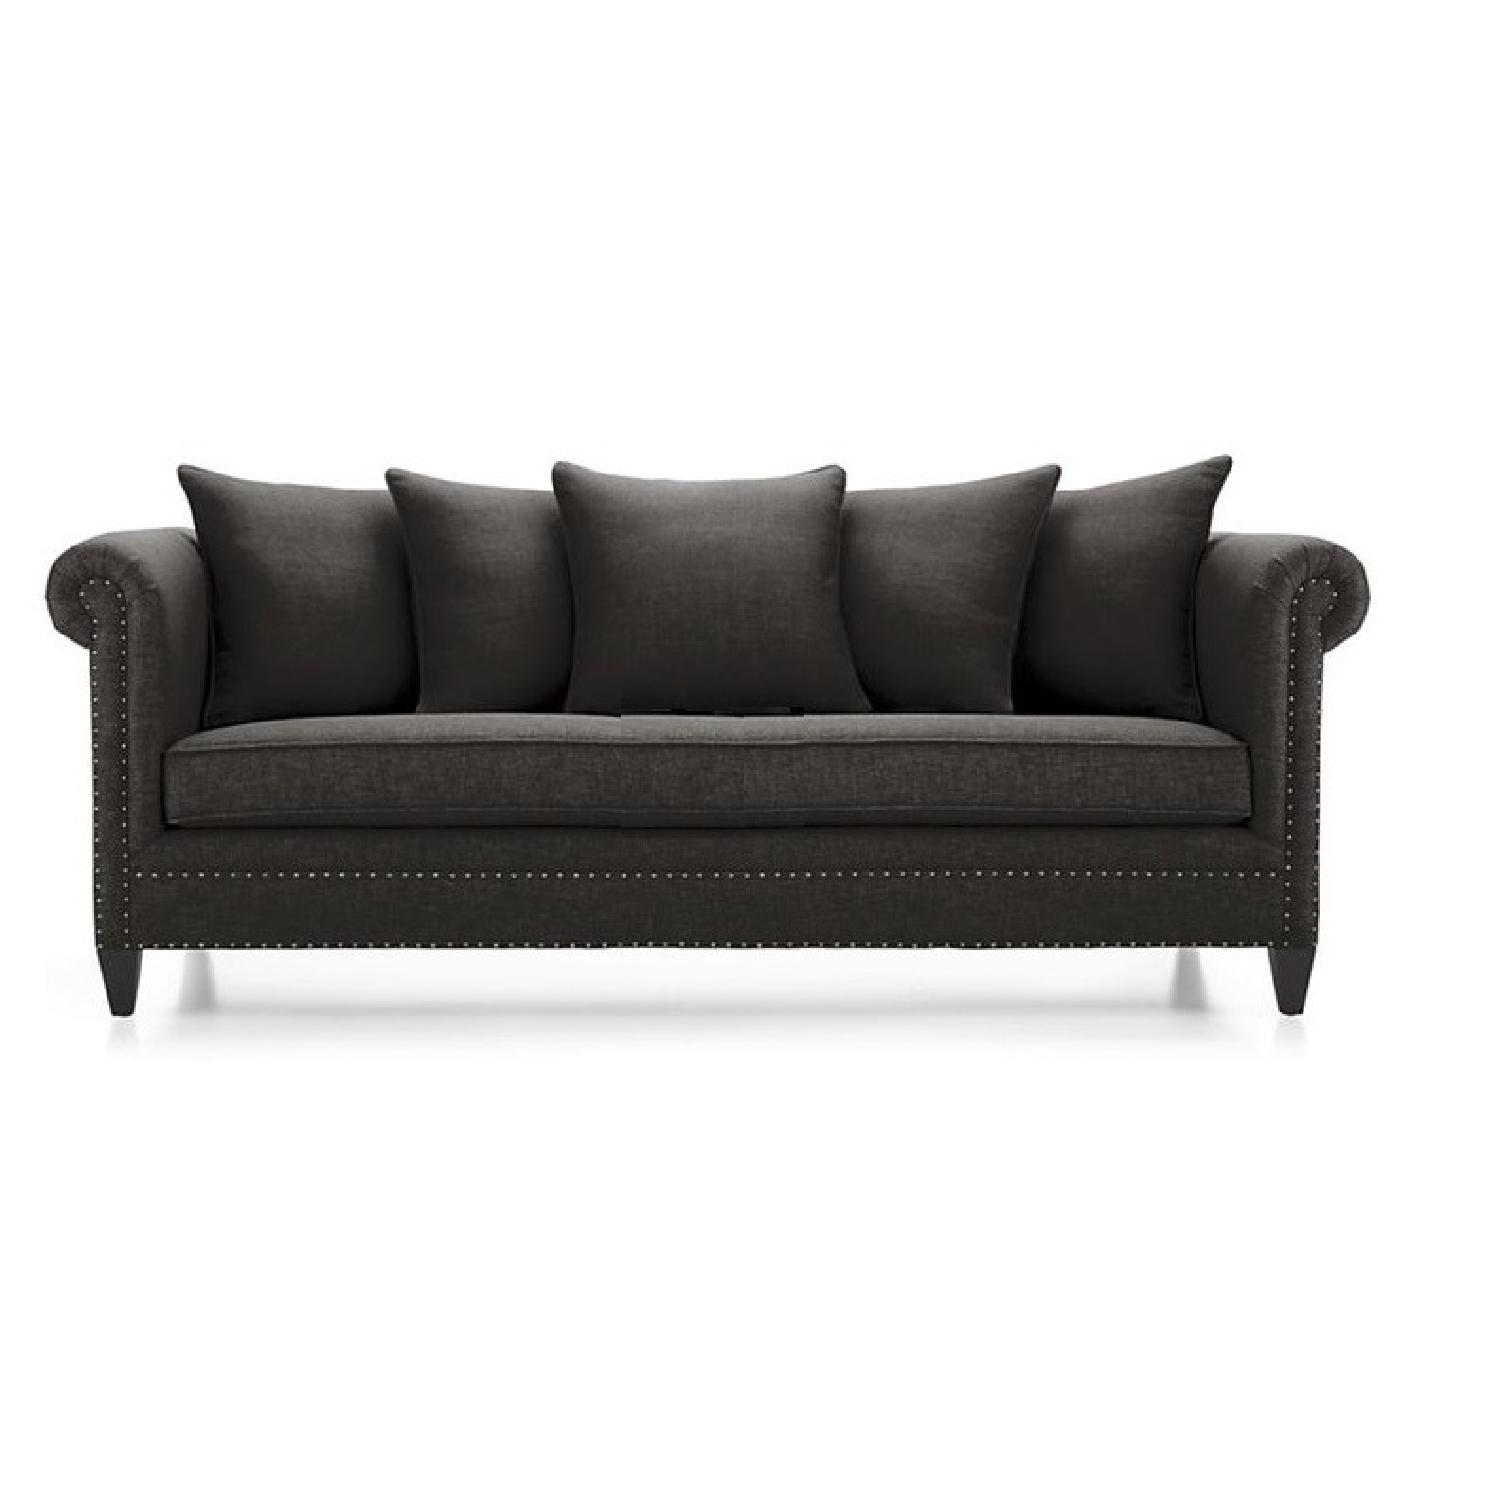 Medium image of crate  u0026 barrel durham sofa